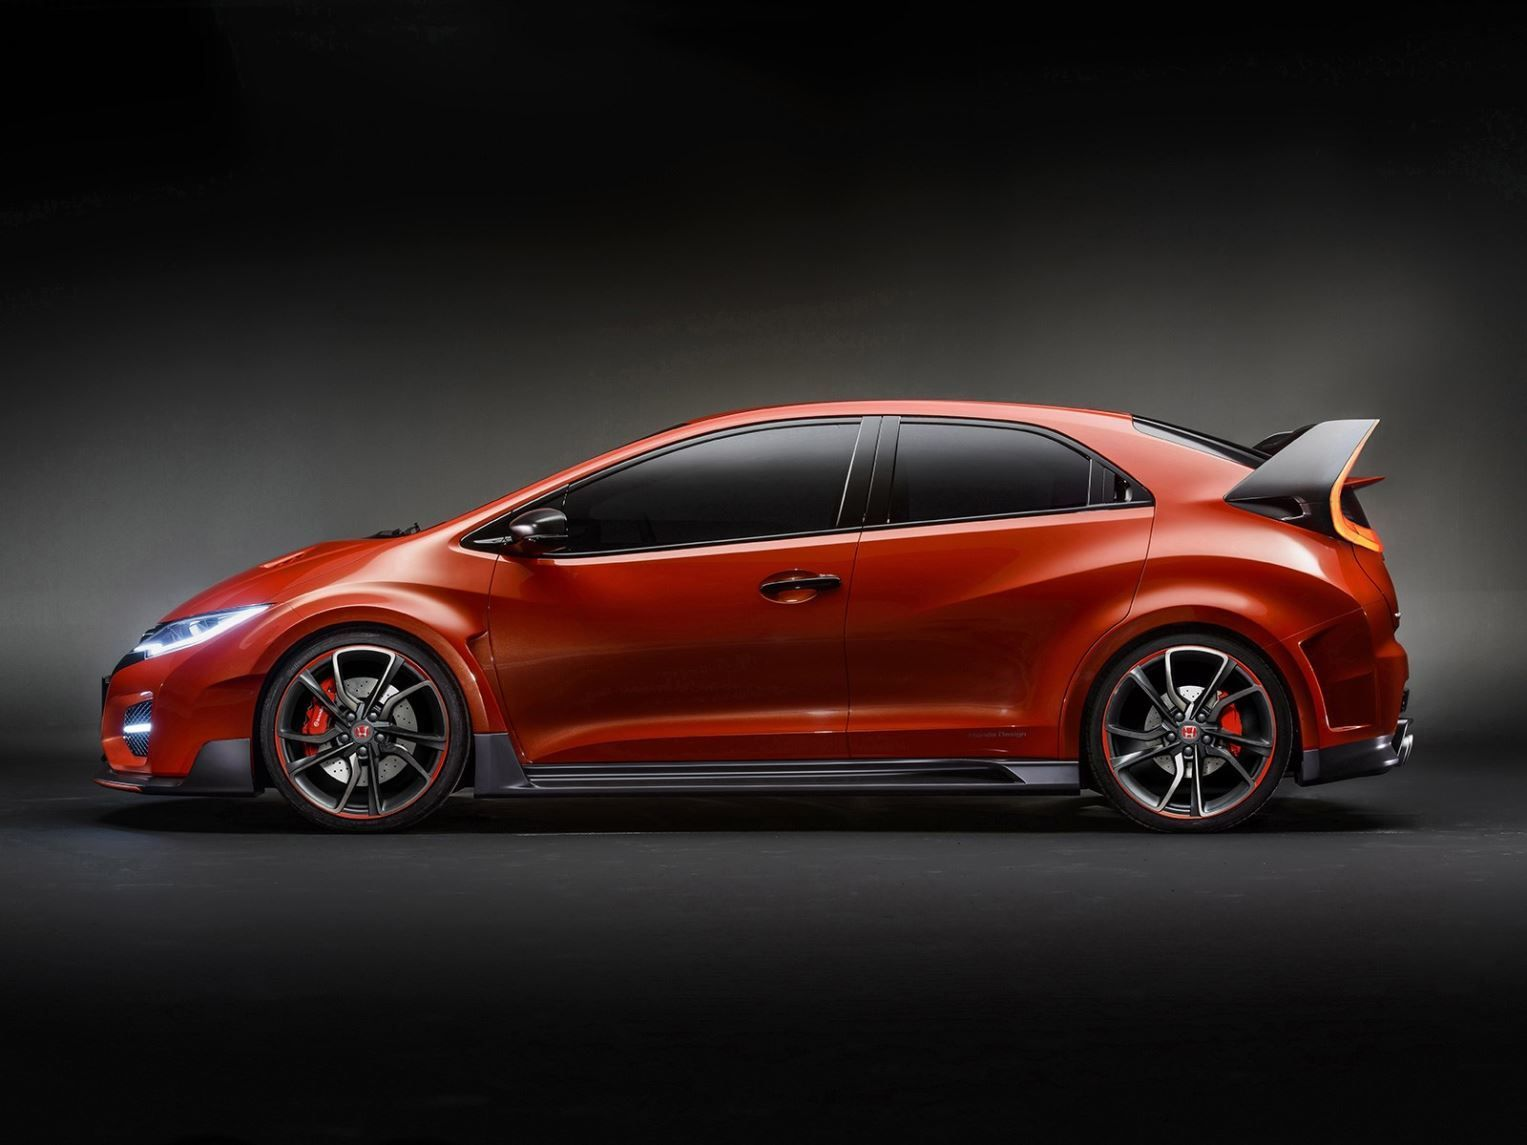 Pin by William Campbell on Cars Honda civic type r, 2015